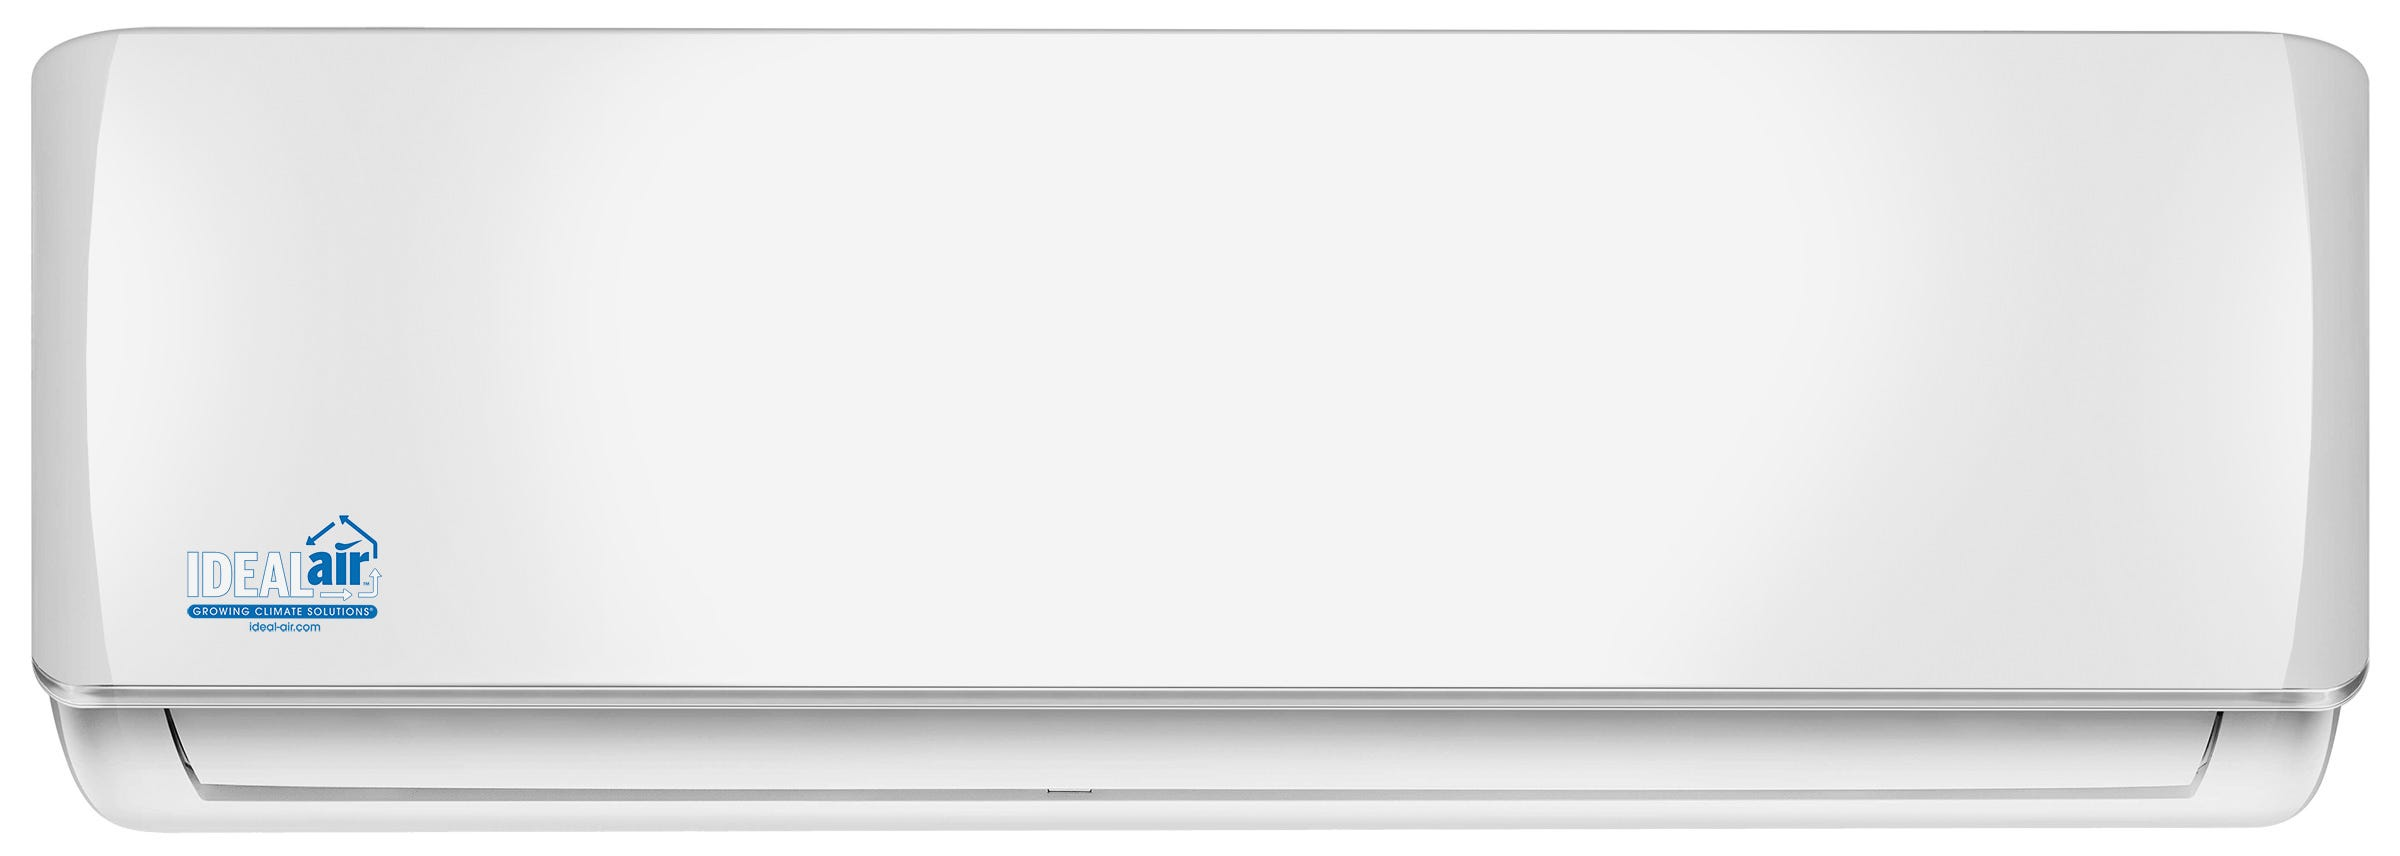 Ideal-Air Pro-Dual 12,000 BTU Multi-Zone Wall Mount Heating & Cooling Indoor Head *DISCONTINUED* This item has been discontinued, Please try our selection of Air-Conditioners for an alternative. Ideal-Air Pro-Dual 12,000 BTU Multi-Zone Wall Mount Heating & Cooling Indoor Head Ideal-Air Pro-Dual 12,000 BTU Multi-Zone Wall Mount Heating & Cooling Indoor Head unit can be matched up with multiple different configuration with 1 single outdoor condensing unit. (See Match up chart online at www.ideal-air.com, this will also be listed on the packaging of the box). Maximum cooling area up to 252 sq. ft. 3 speed fan, 25dB sound rating, 208-230V, 60Hz, 1ph, 0.25 Amps 20 watts. Line set connections 1/4 x 1/2 inch.